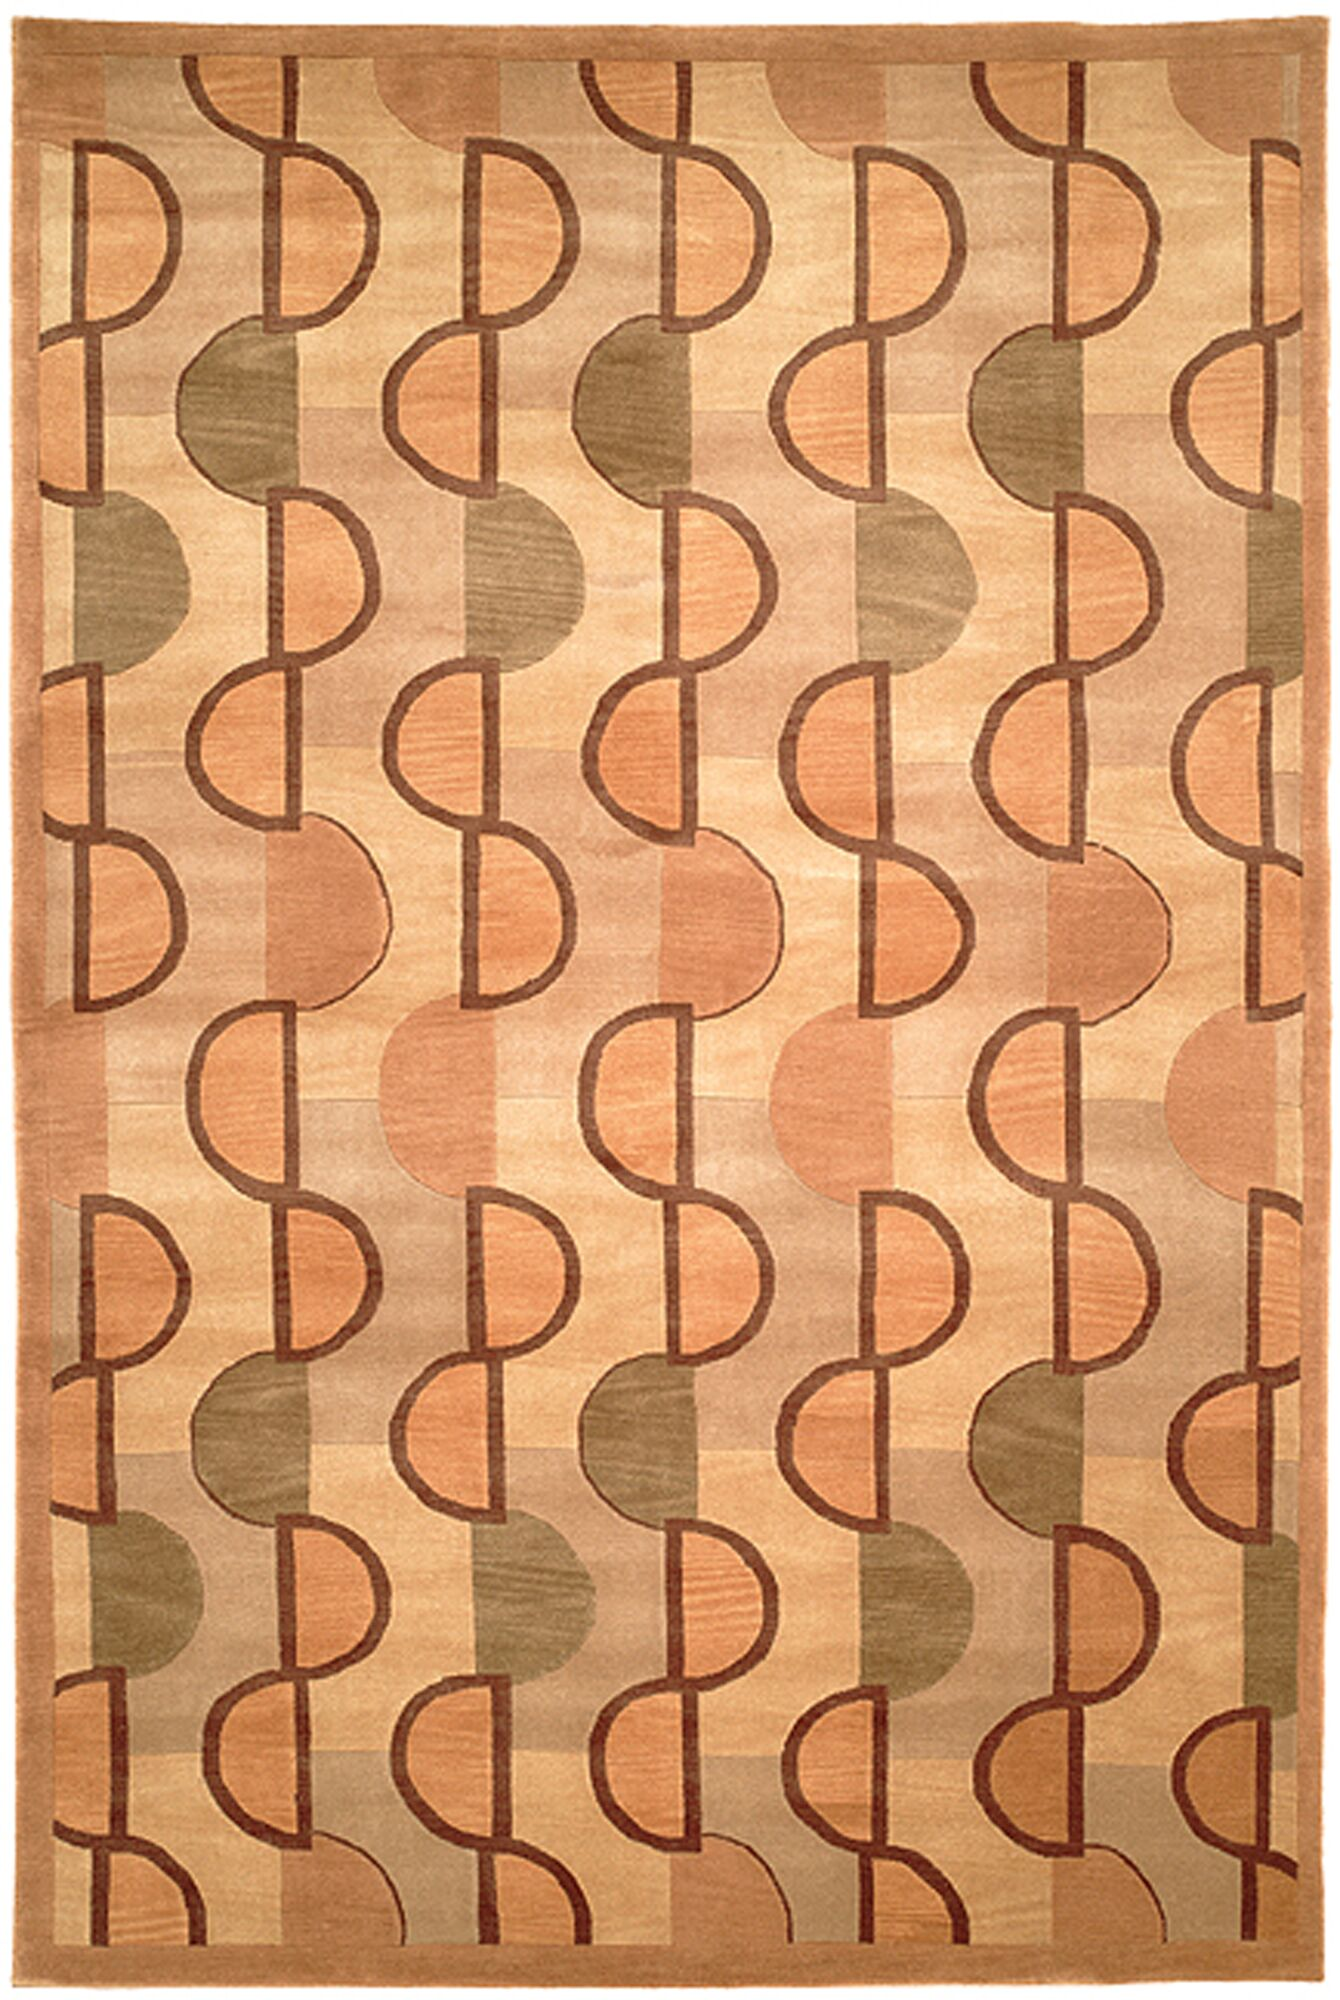 Dili Tibetan Hand Knotted Wool Beige/Rust Area Rug Rug Size: Rectangle 6' x 9''